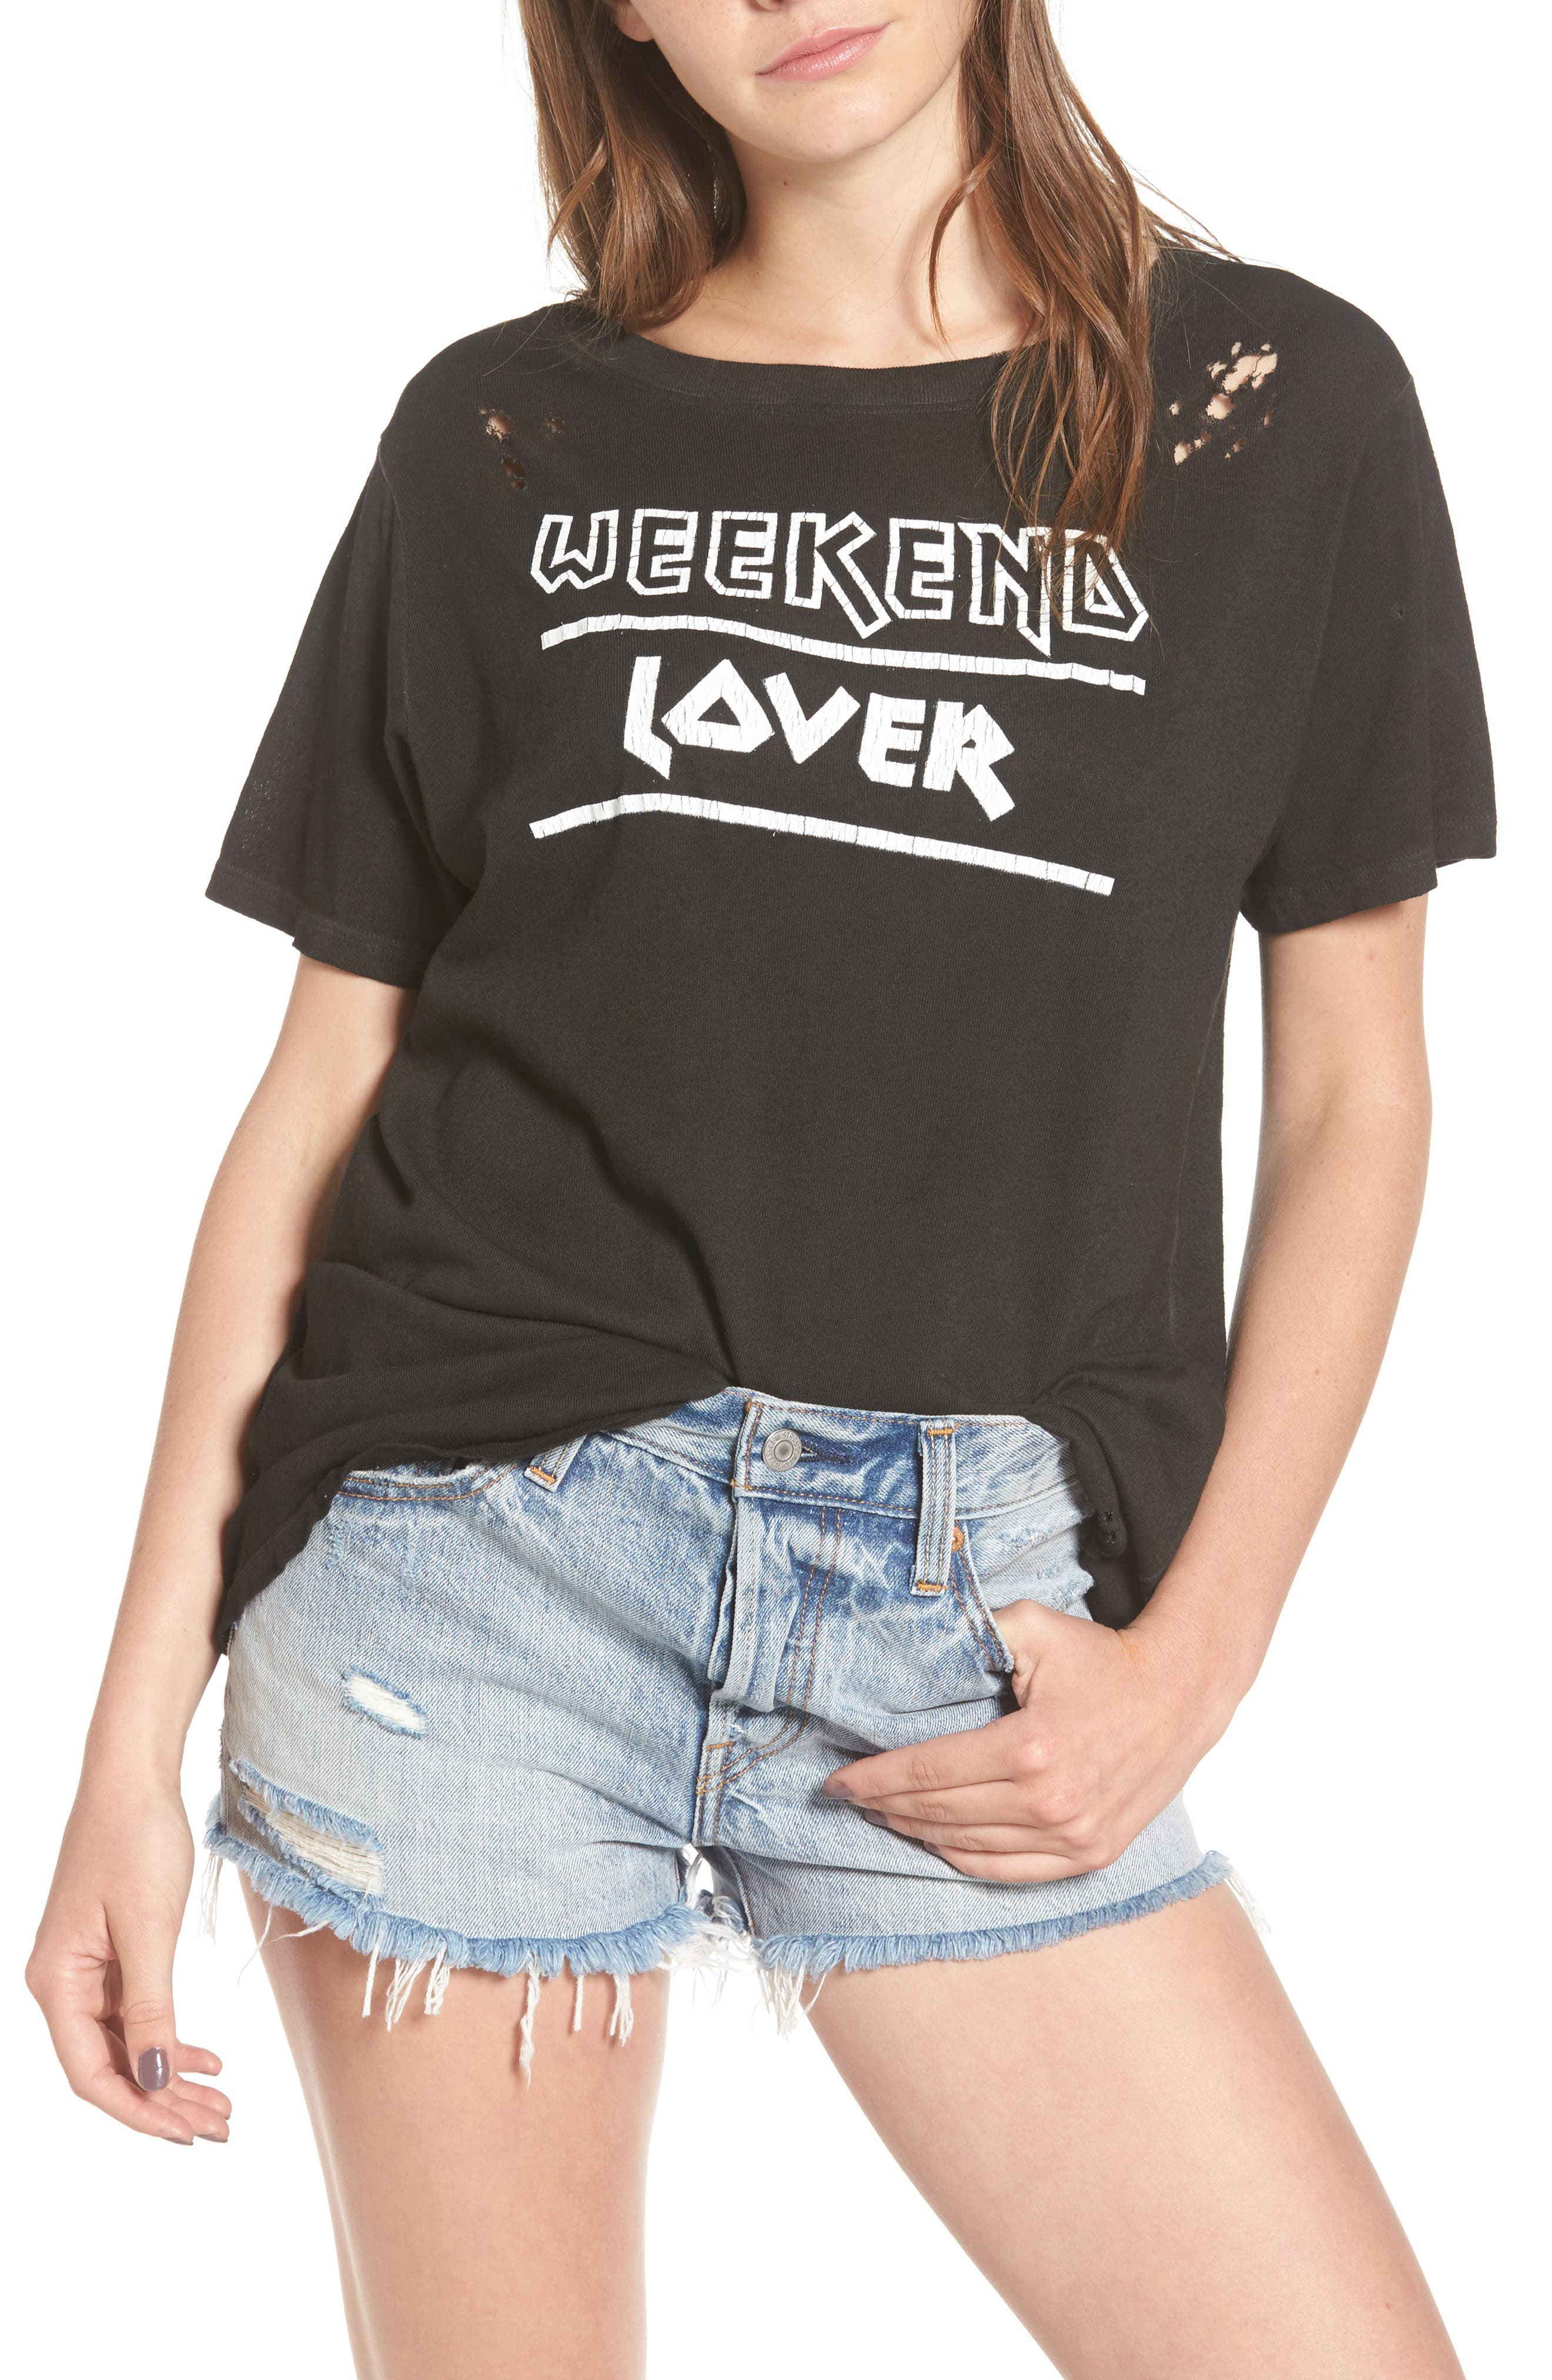 PRINCE PETER,                             Weekend Lover Distressed Tee,                             Main thumbnail 1, color,                             001